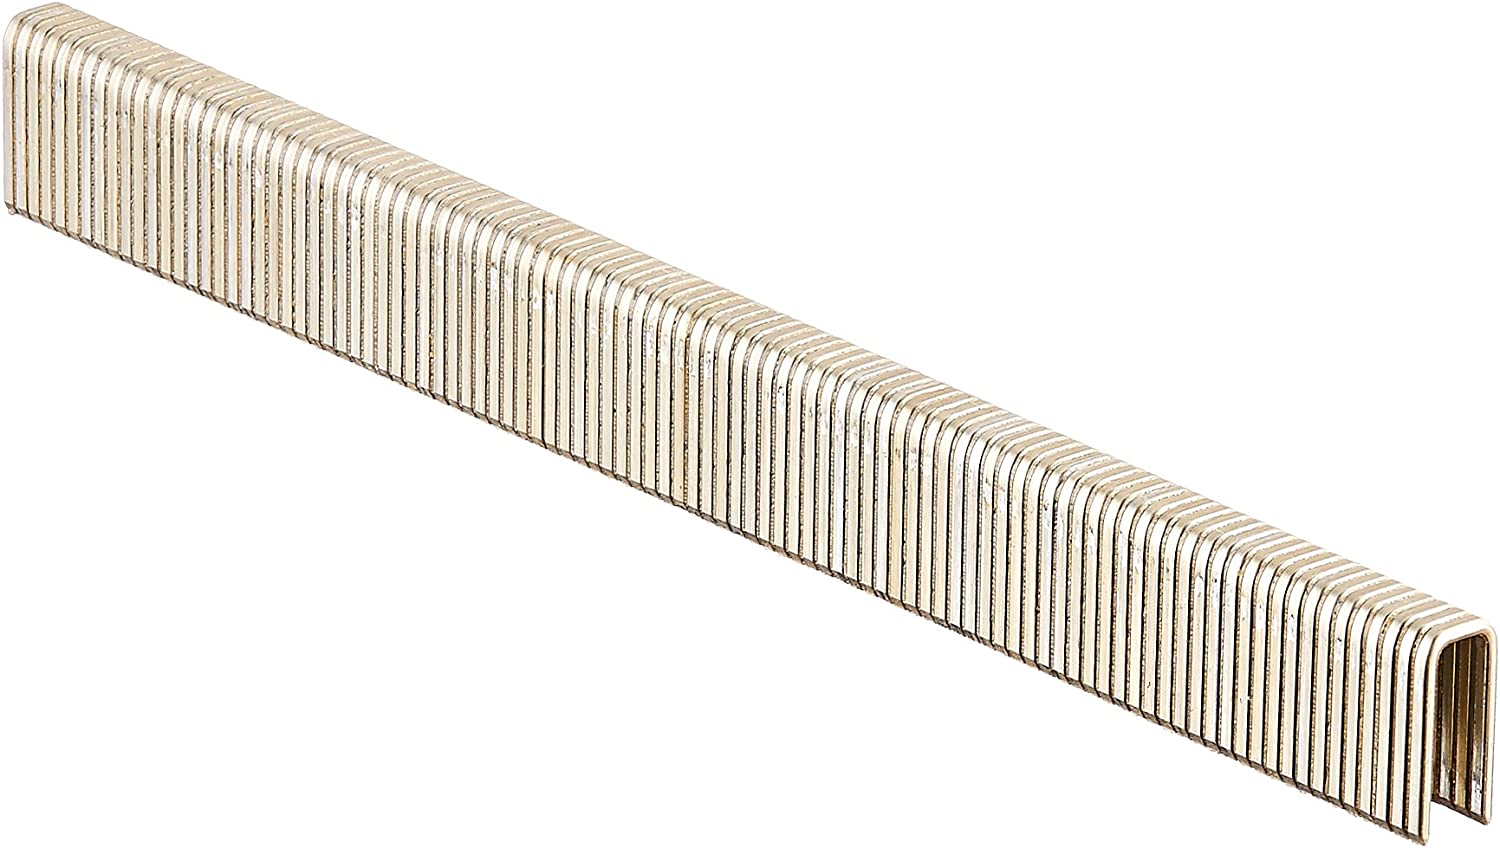 PORTER-CABLE PNS18100-1 1-Inch 18 Gauge Narrow Crown Staple 2 Pack